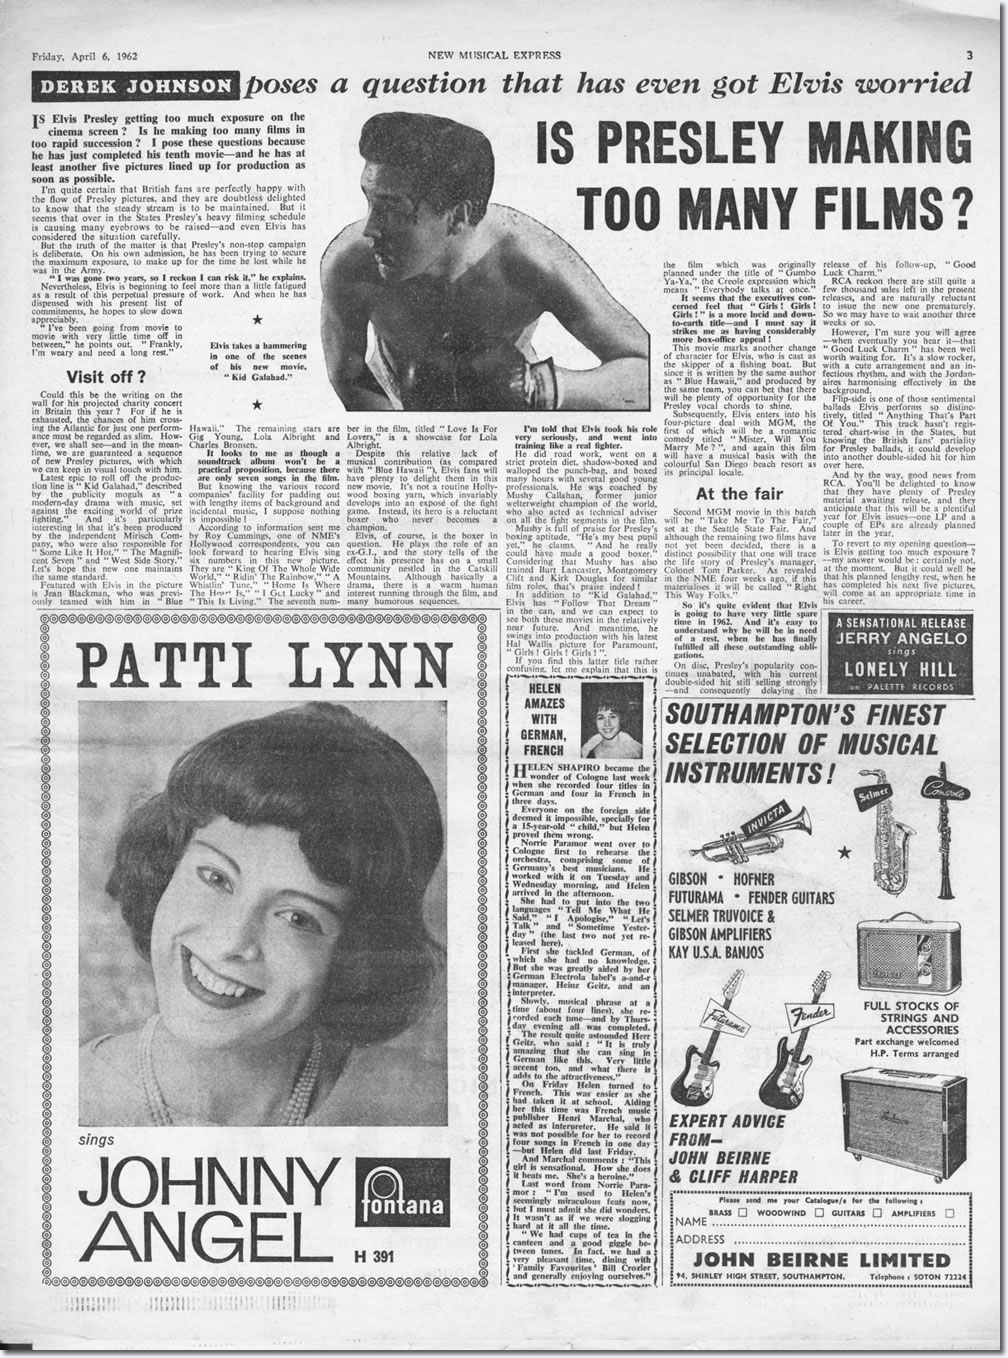 Original NME article : Is Presley Making Too Many Films?